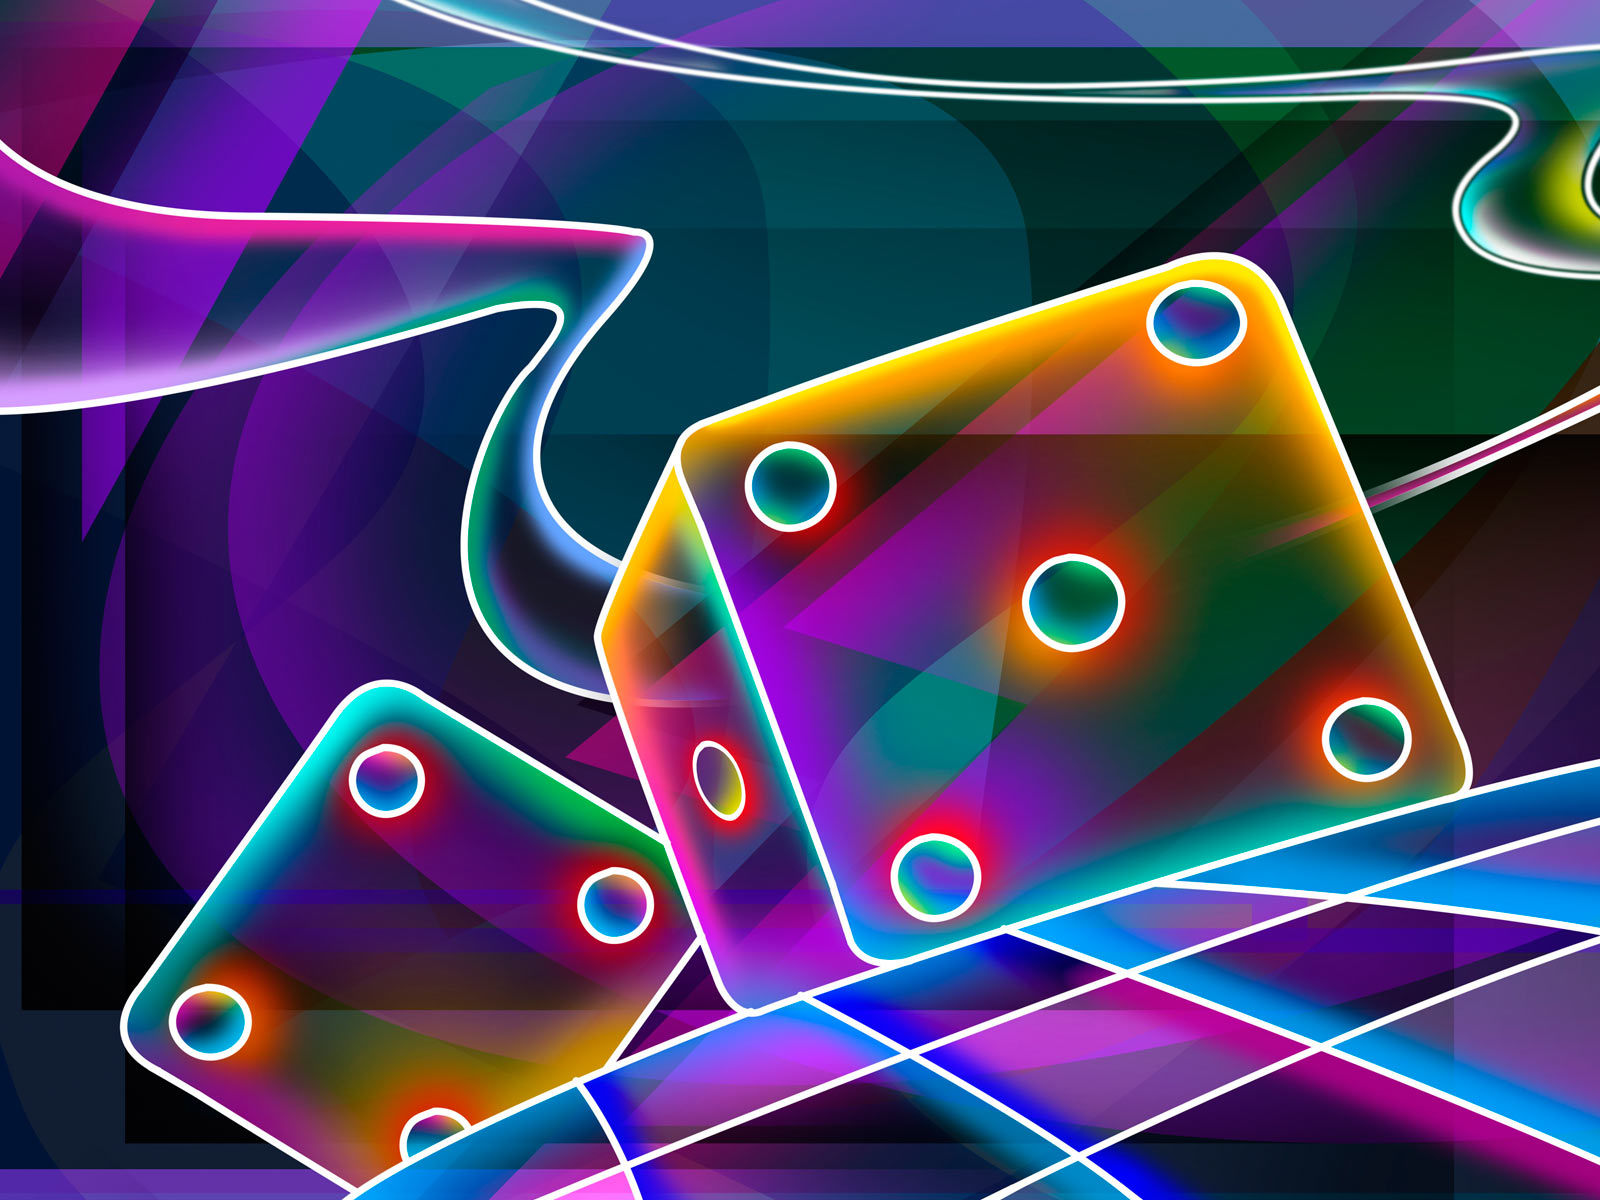 3D Abstract Wallpapers HD | A1 Wallpapers